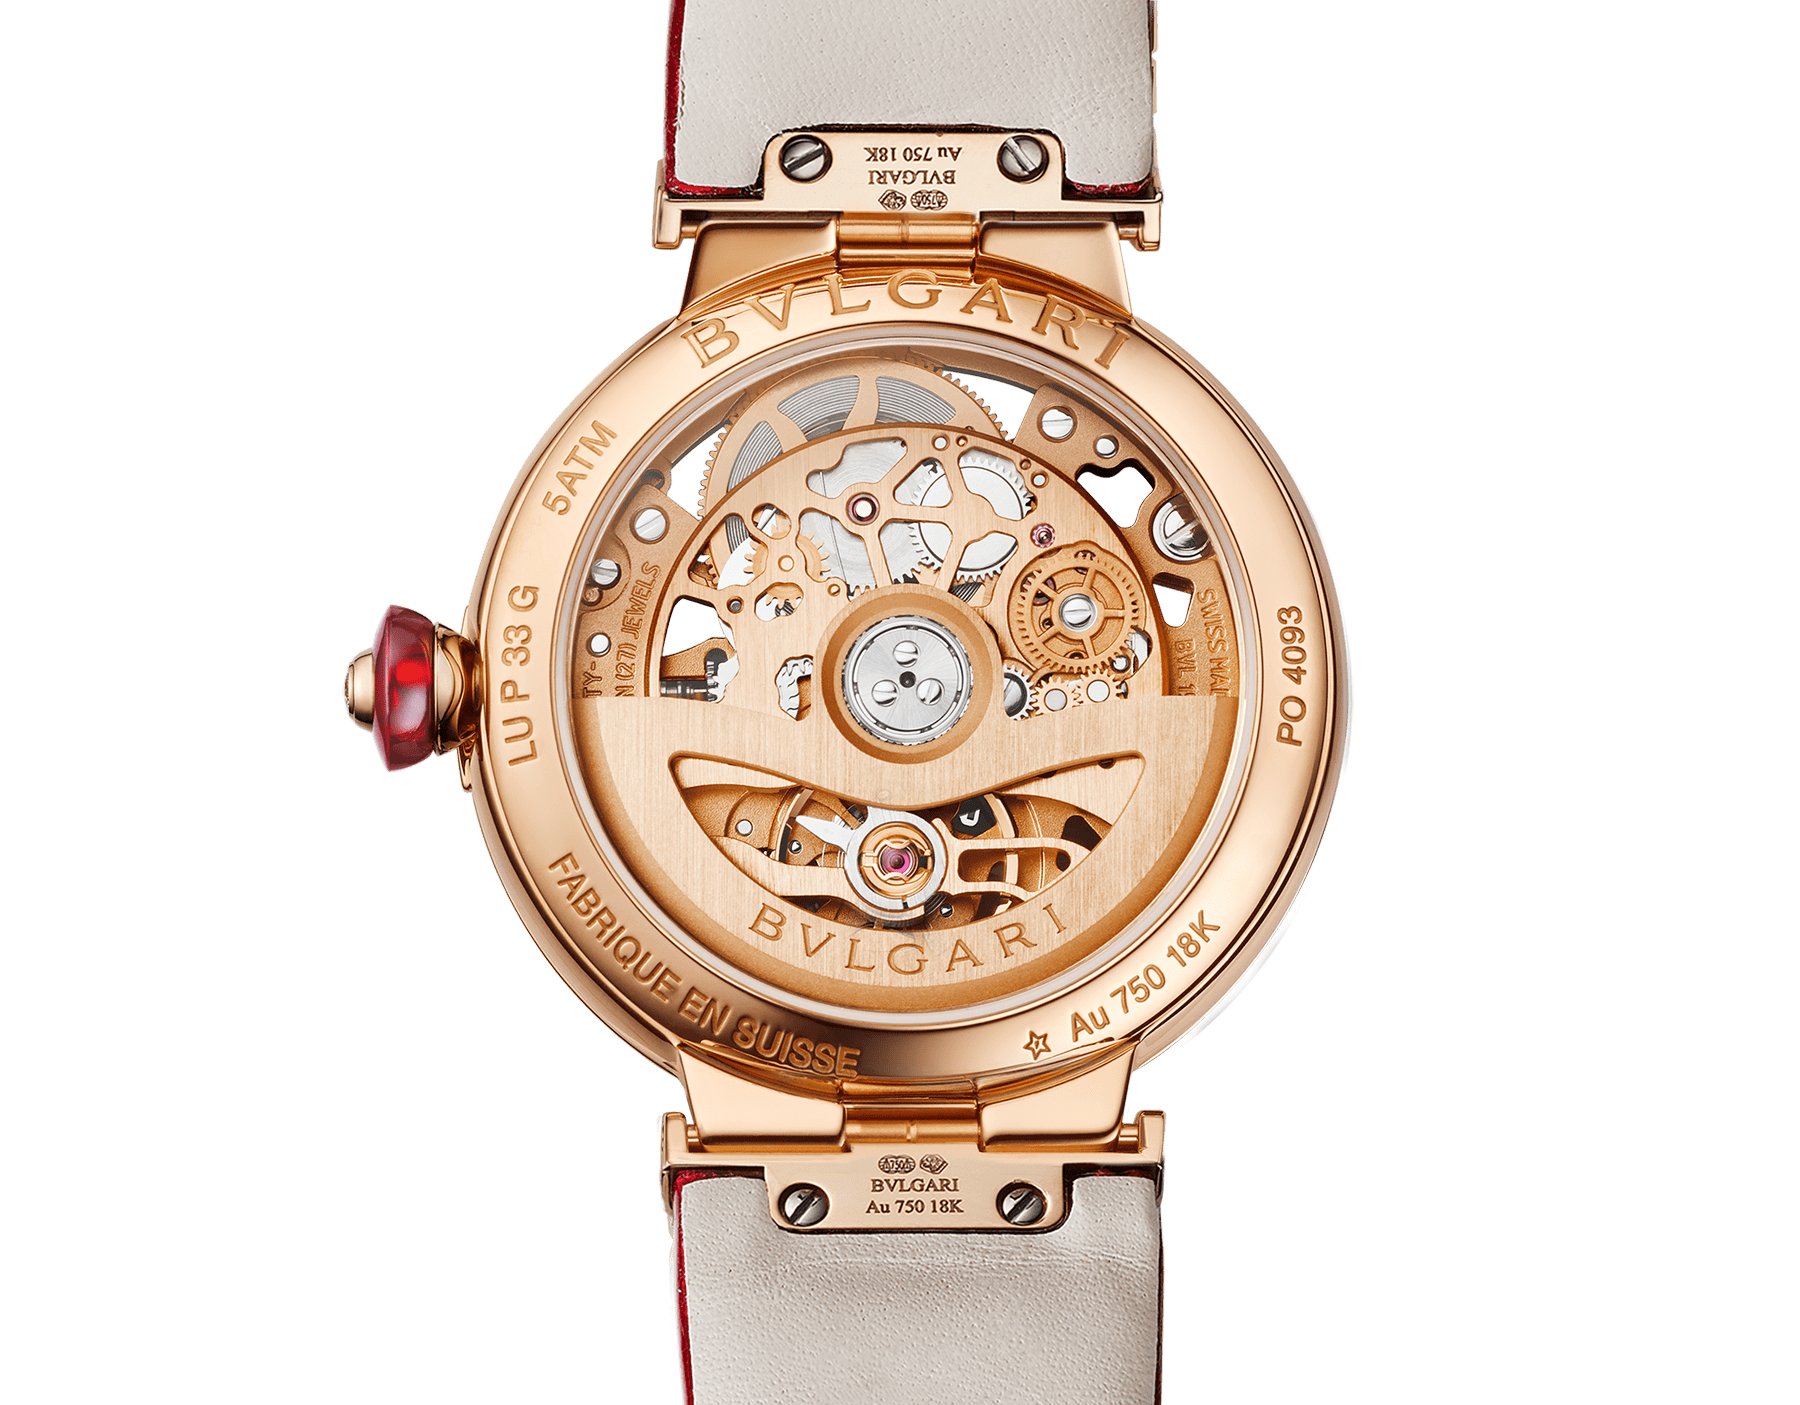 LVCEA Skeleton watch with mechanical manufacture movement, automatic winding, 18 kt rose gold case set with diamonds, openwork BVLGARI logo dial set with diamonds and red alligator bracelet 102833 image 4